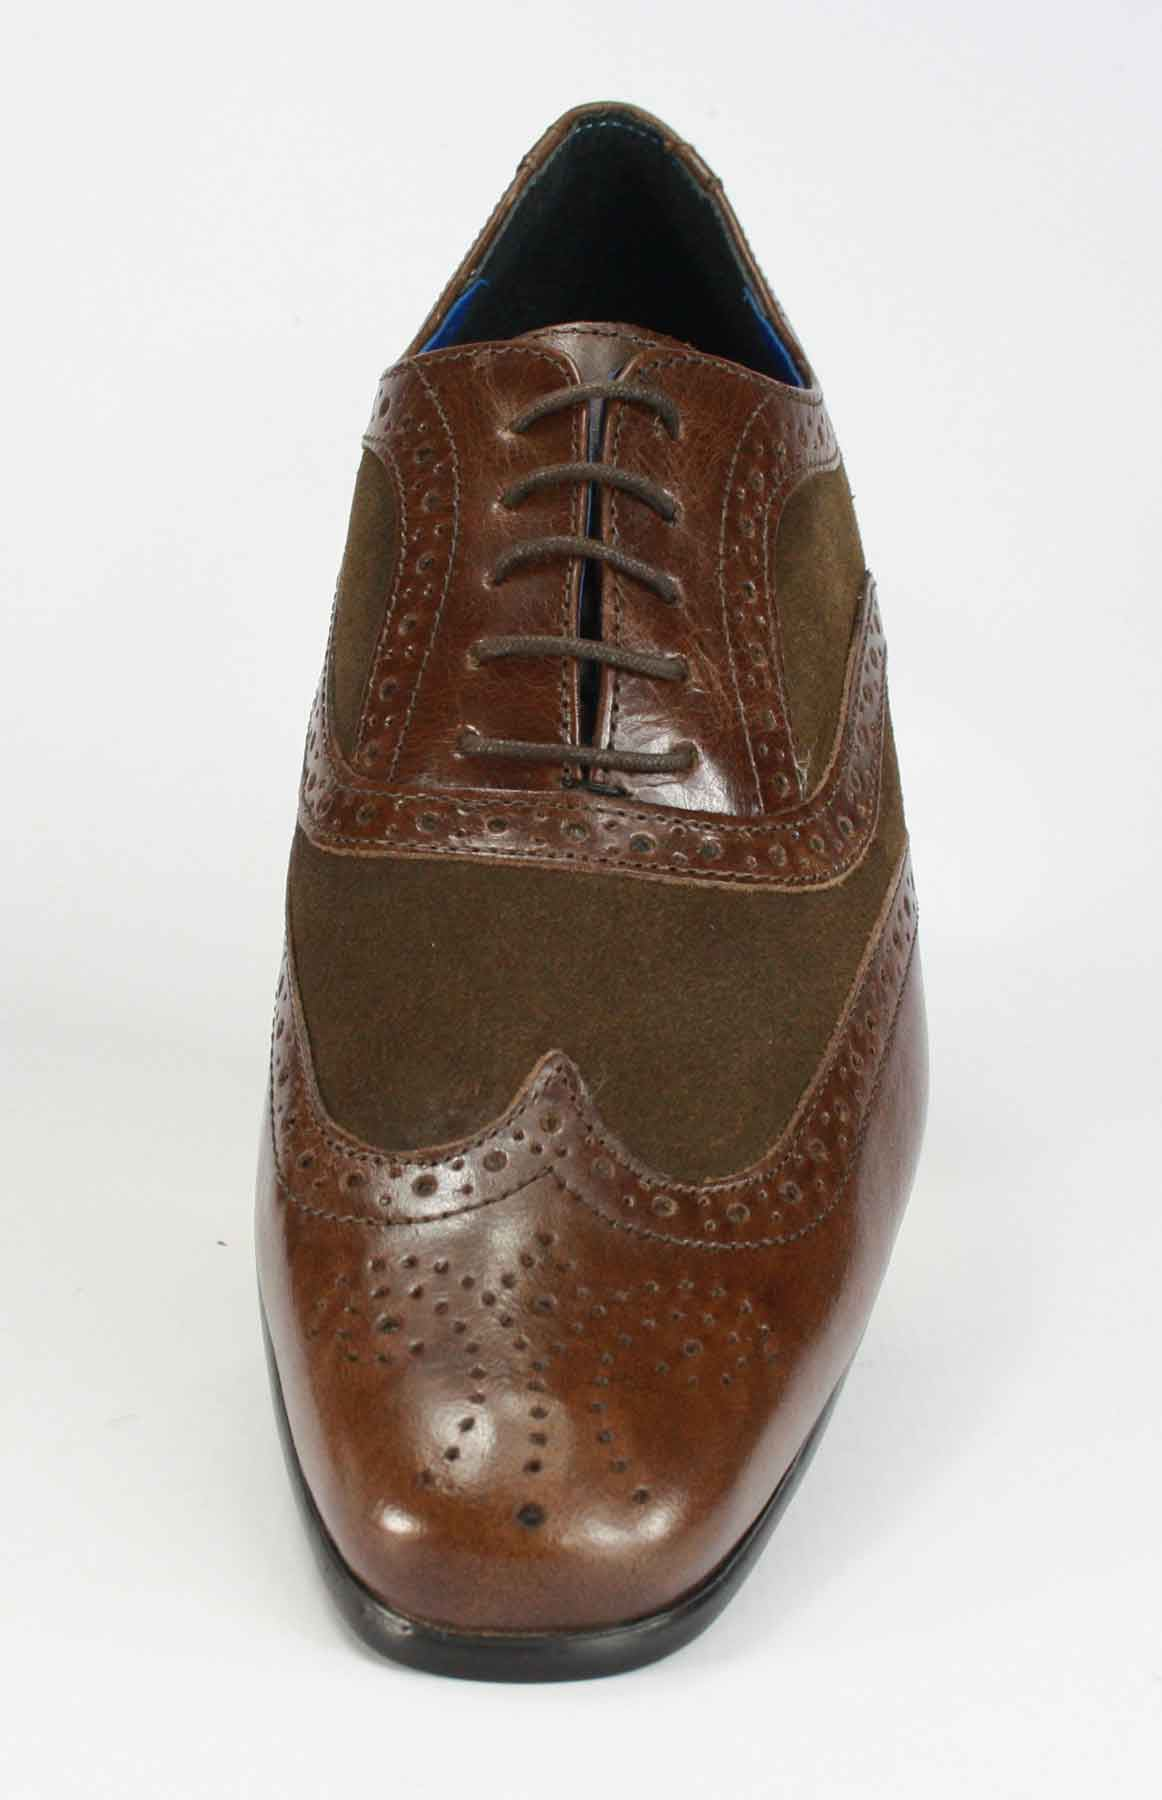 Homme-Red-Tape-Richelieu-Lacets-Smart-Chaussures-en-cuir-marron-tan-navy-en-daim-noir